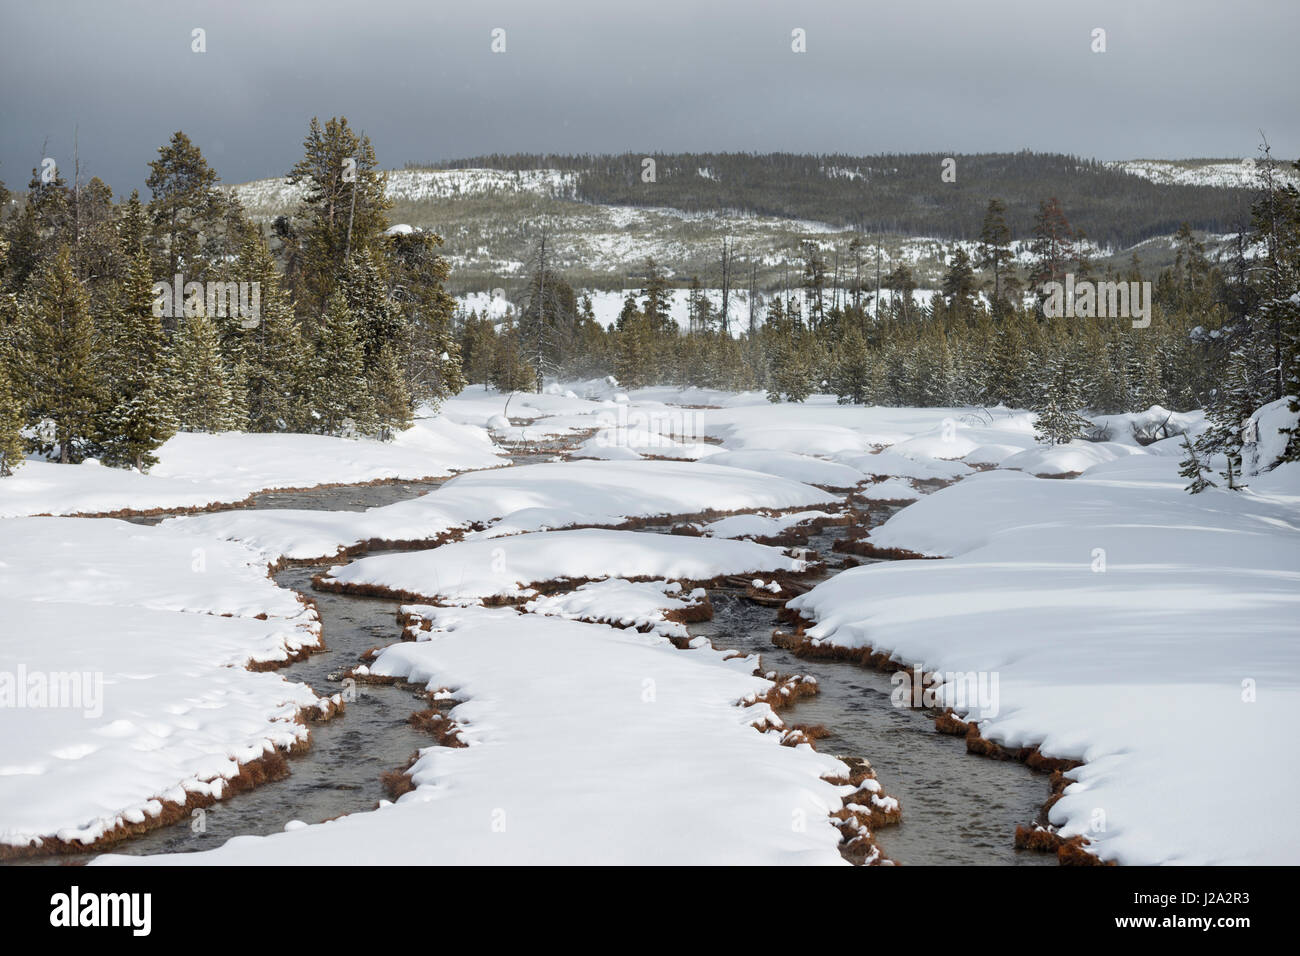 Yellowstone National Park, Continental Divide, open waters, small creeks running down through snow covered woods, - Stock Image